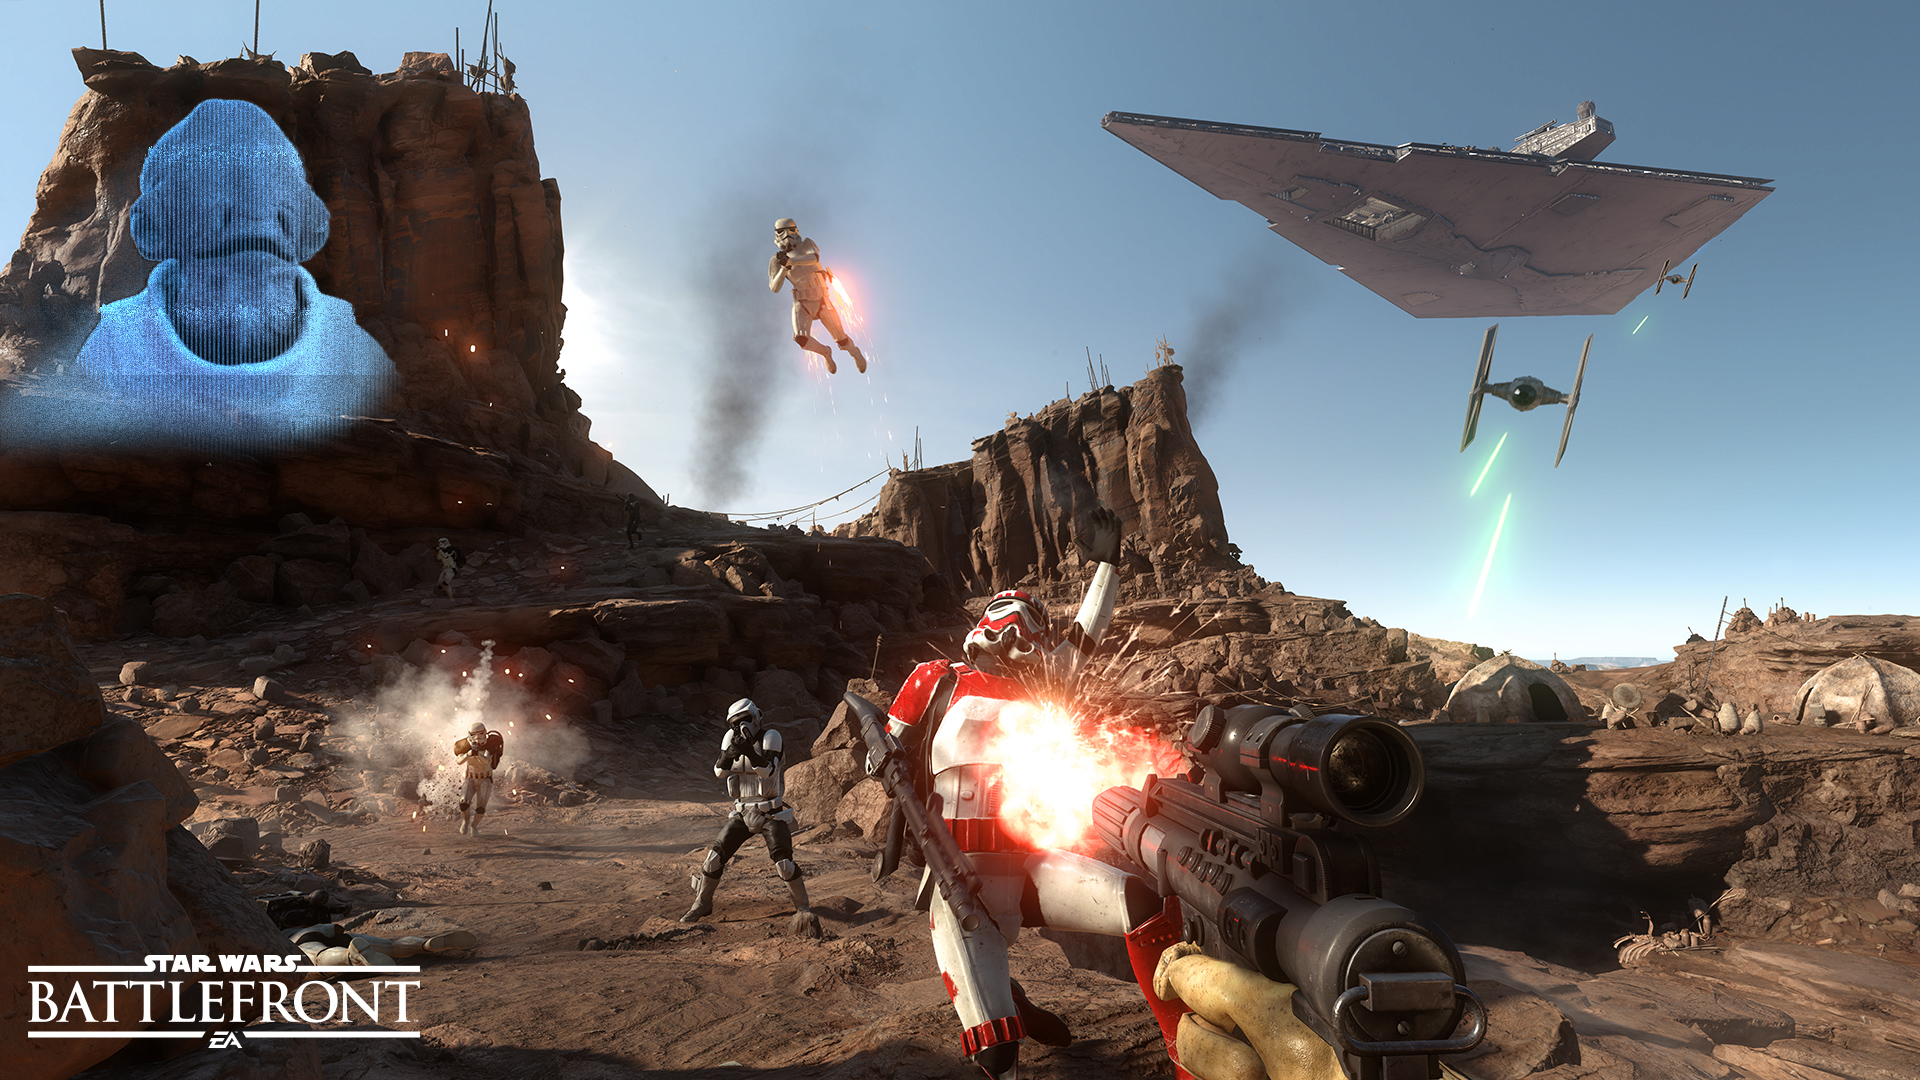 Star Wars: Battlefront's setting and world make for a great experience.